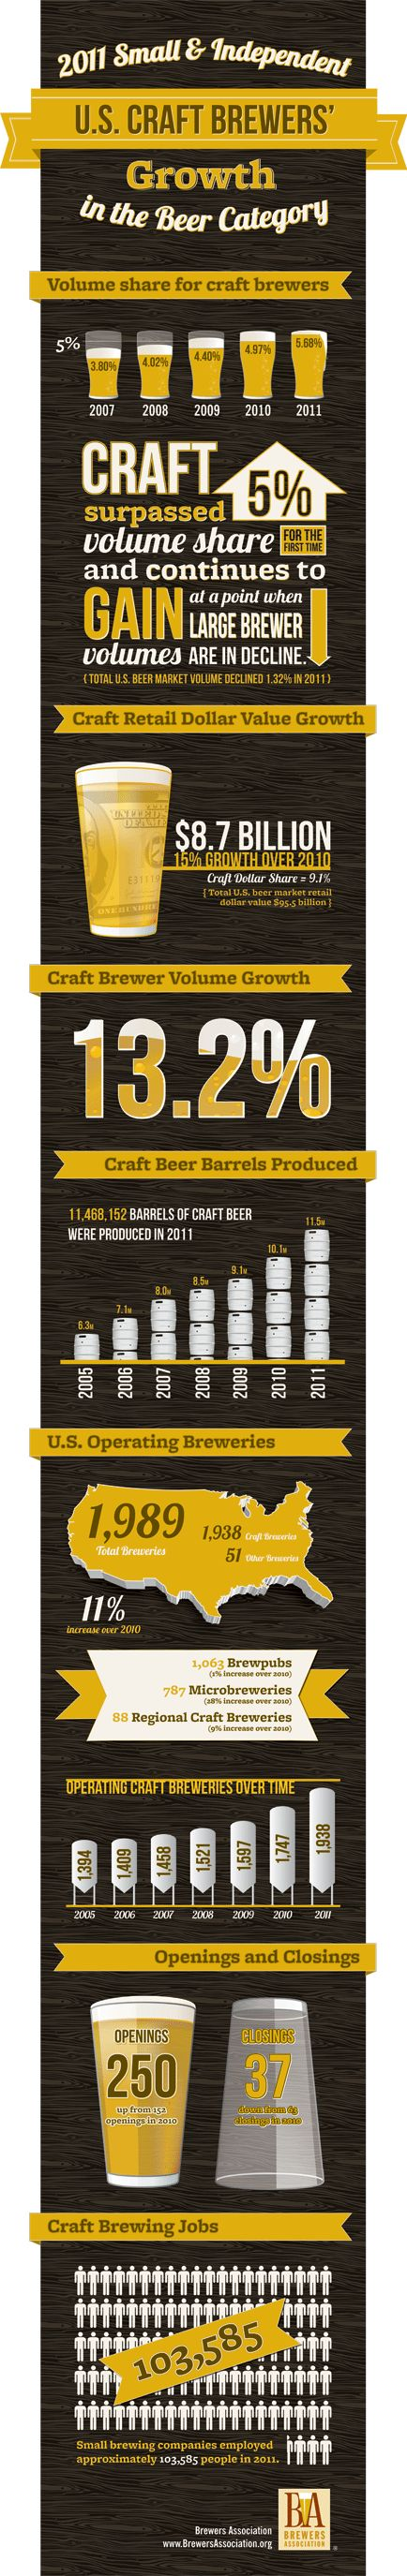 craft brewers guild 25 best images about craft graphics on 1443